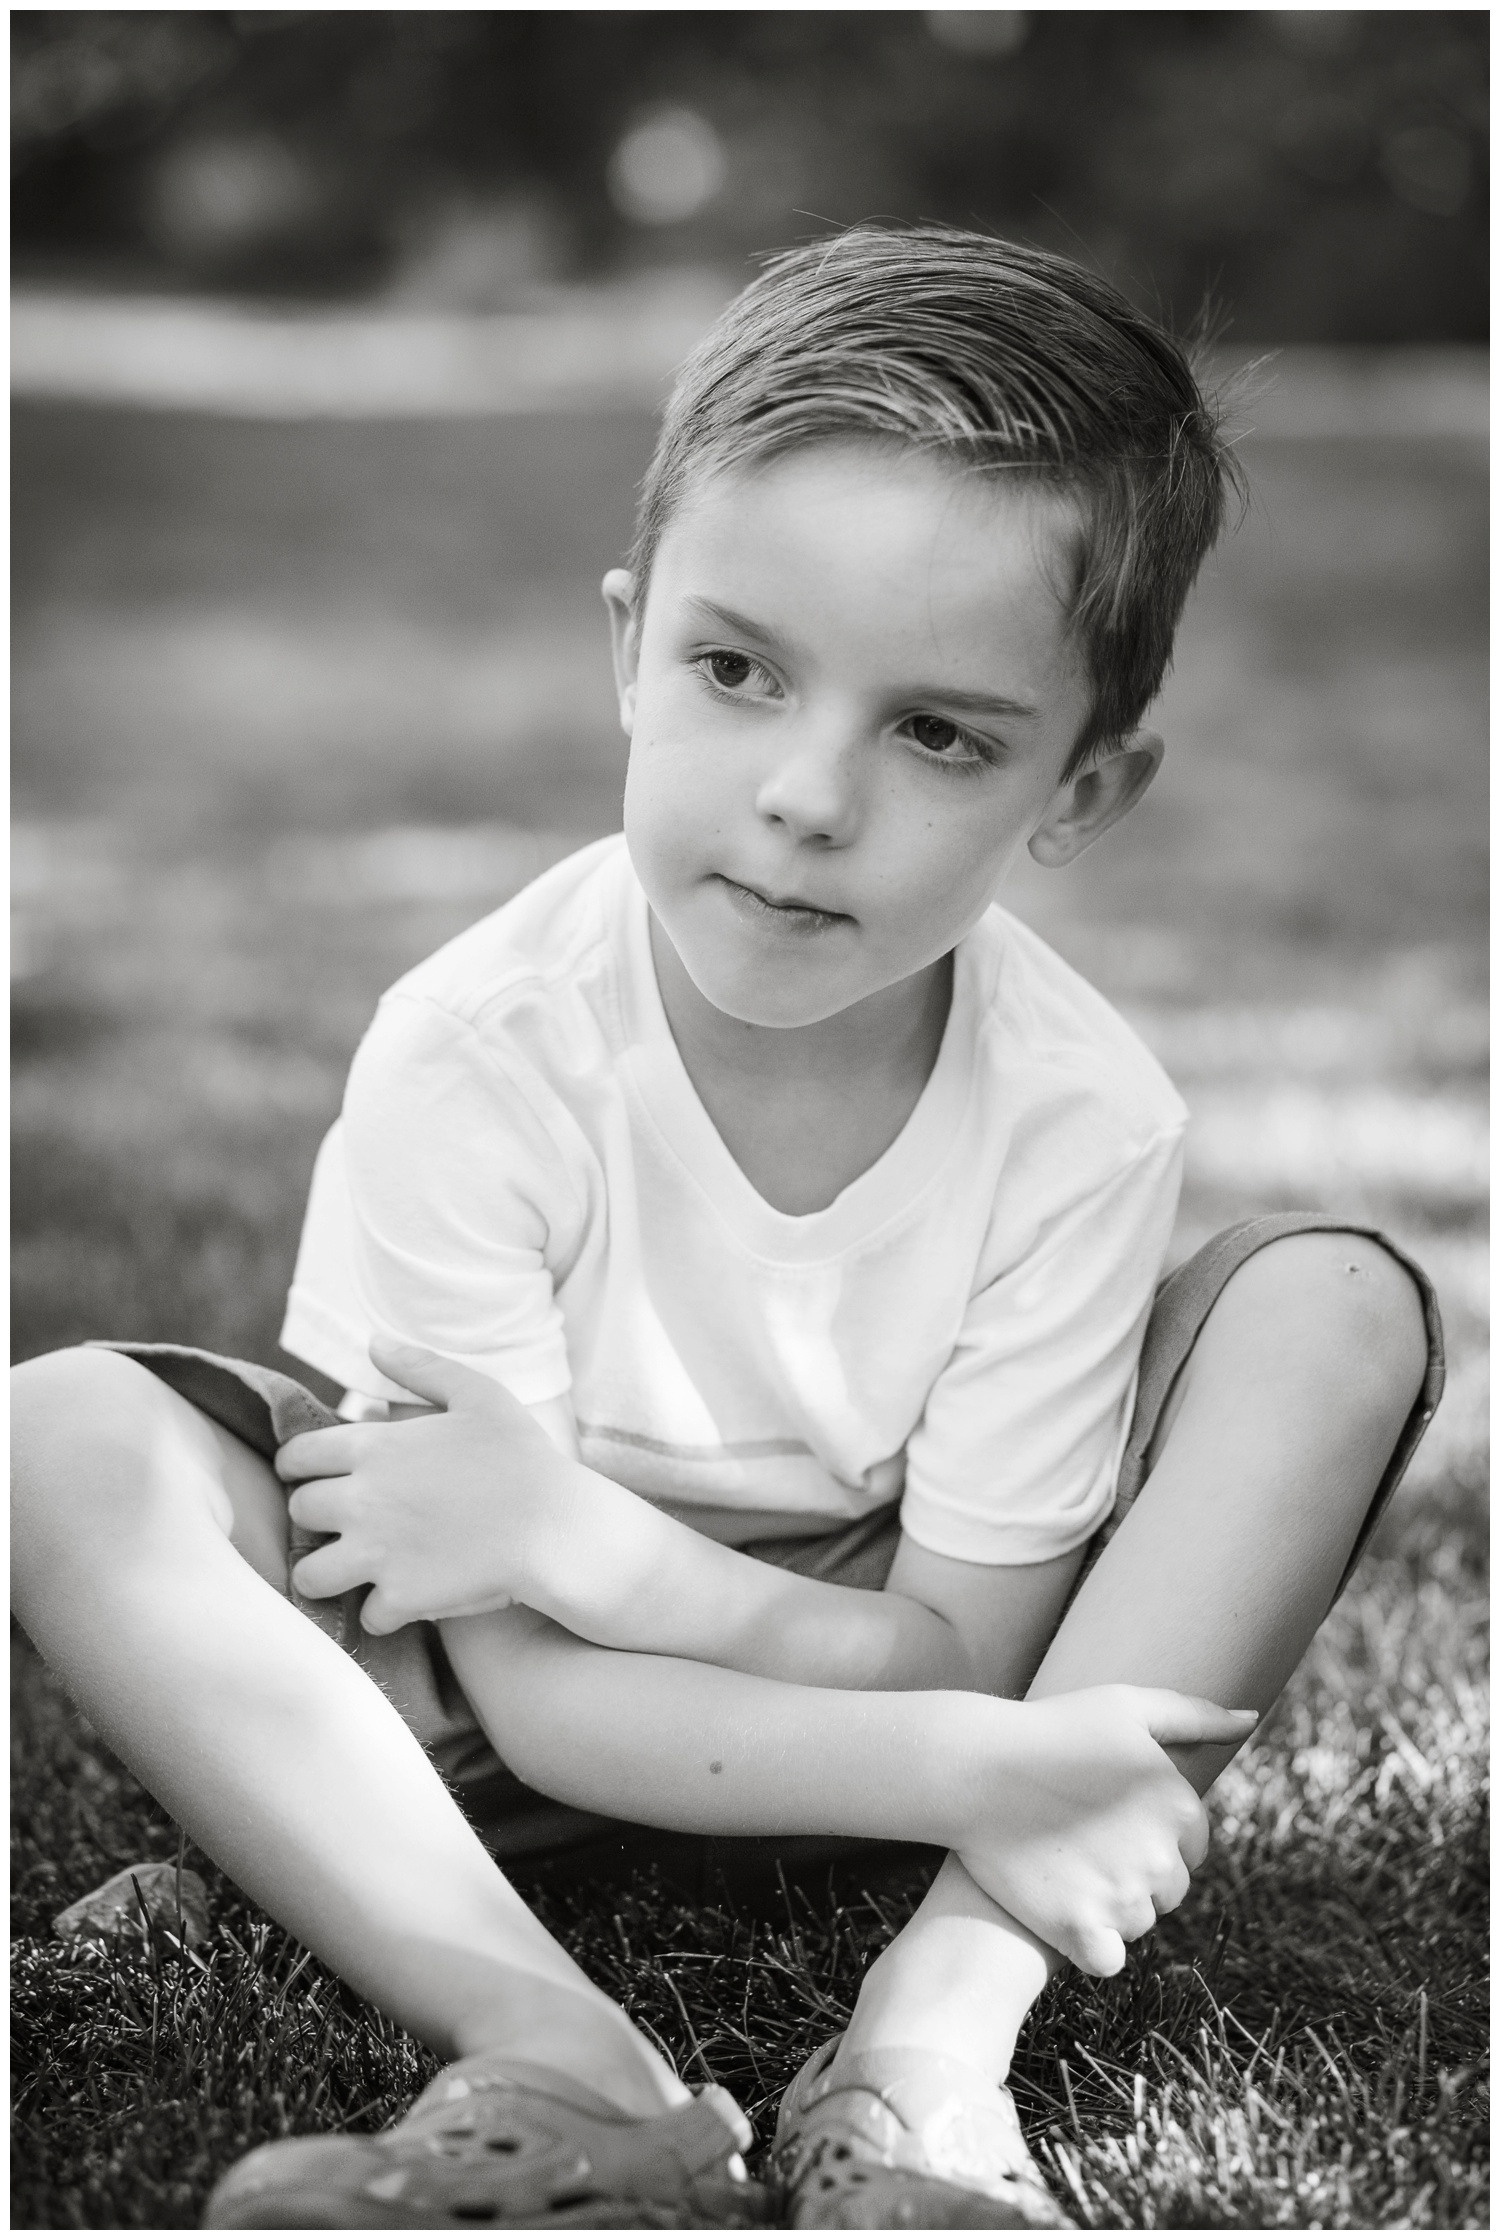 Declan is definitely our more quiet, reflective kiddo. He's  introspective and thoughtful and kind.